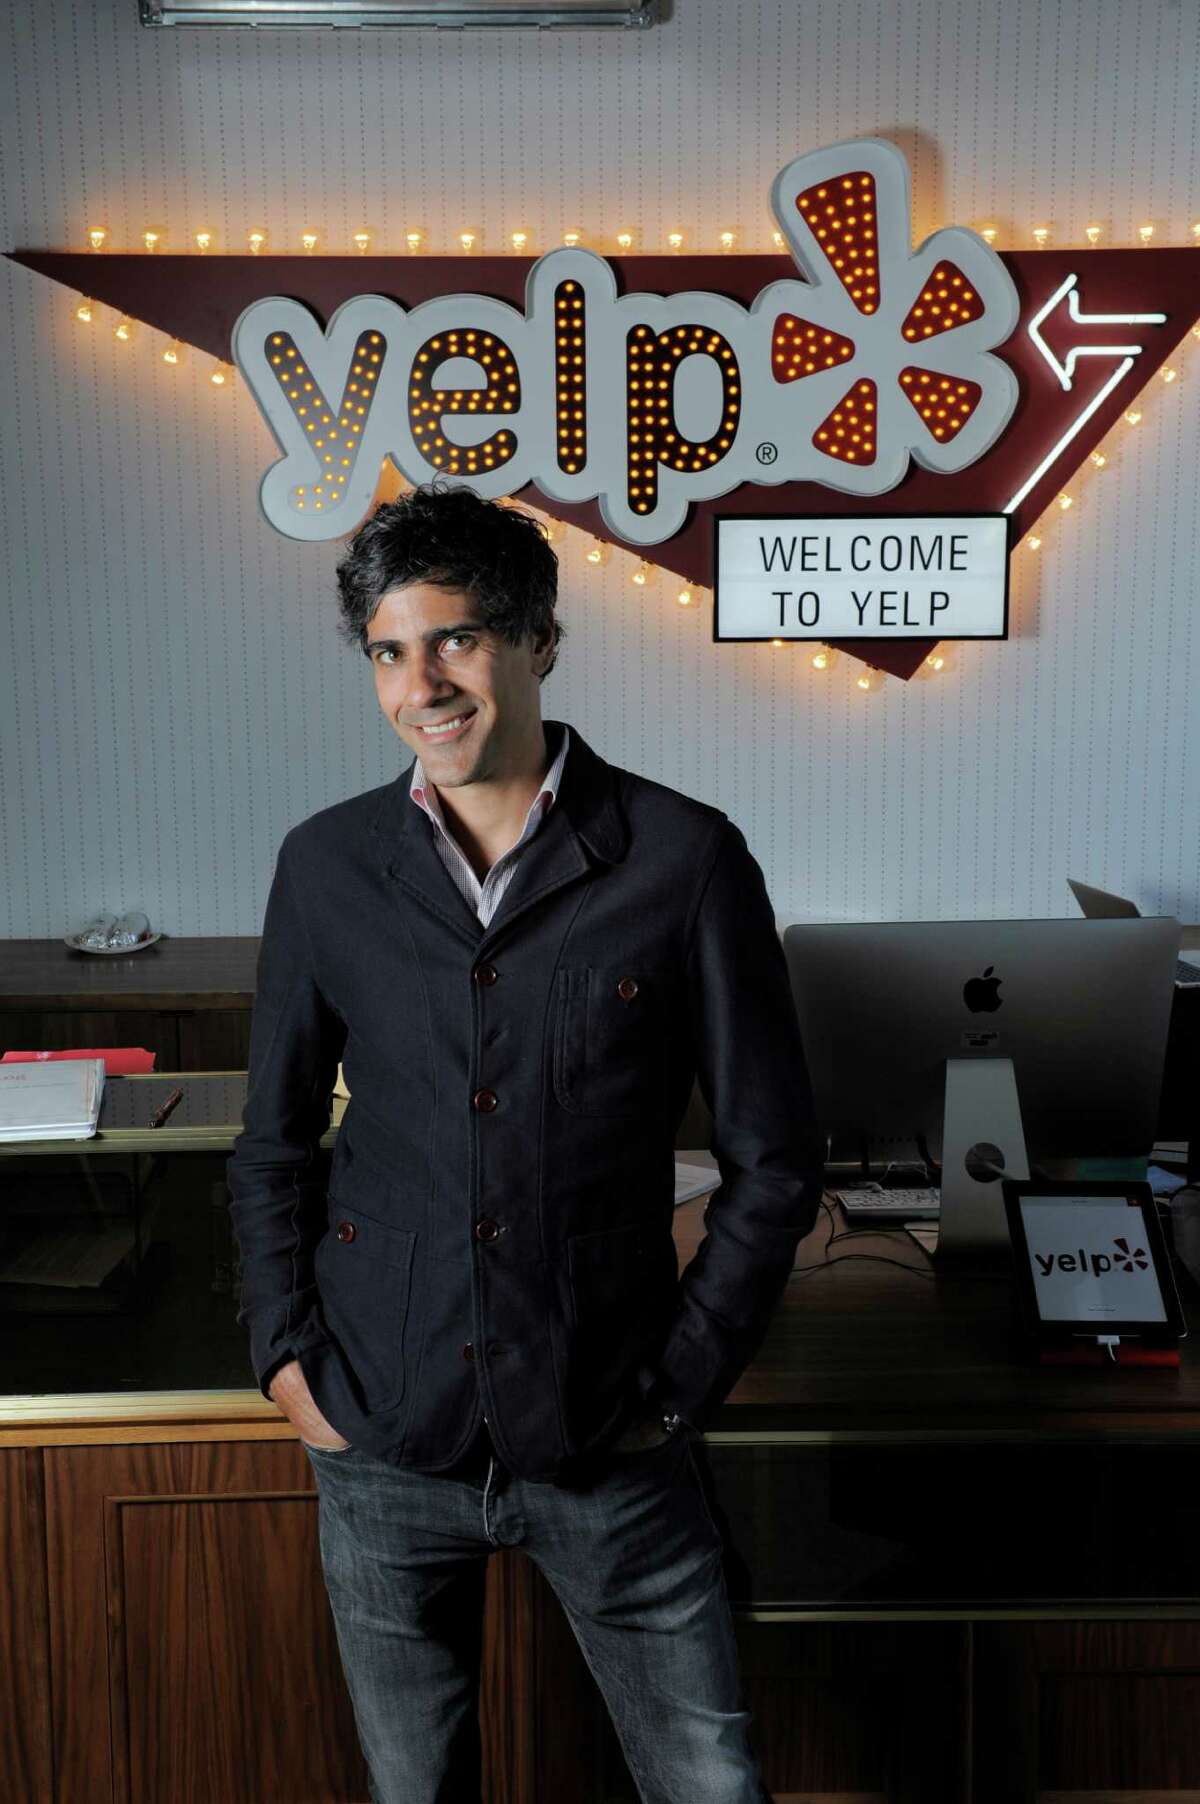 Yelp CEO and co-founder Jeremy Stoppelman poses for a portrait at Yelp headquarters on July 29, 2014 in San Francisco, CA. Yelp turns 10 years old during the Aug. 3 weekend.